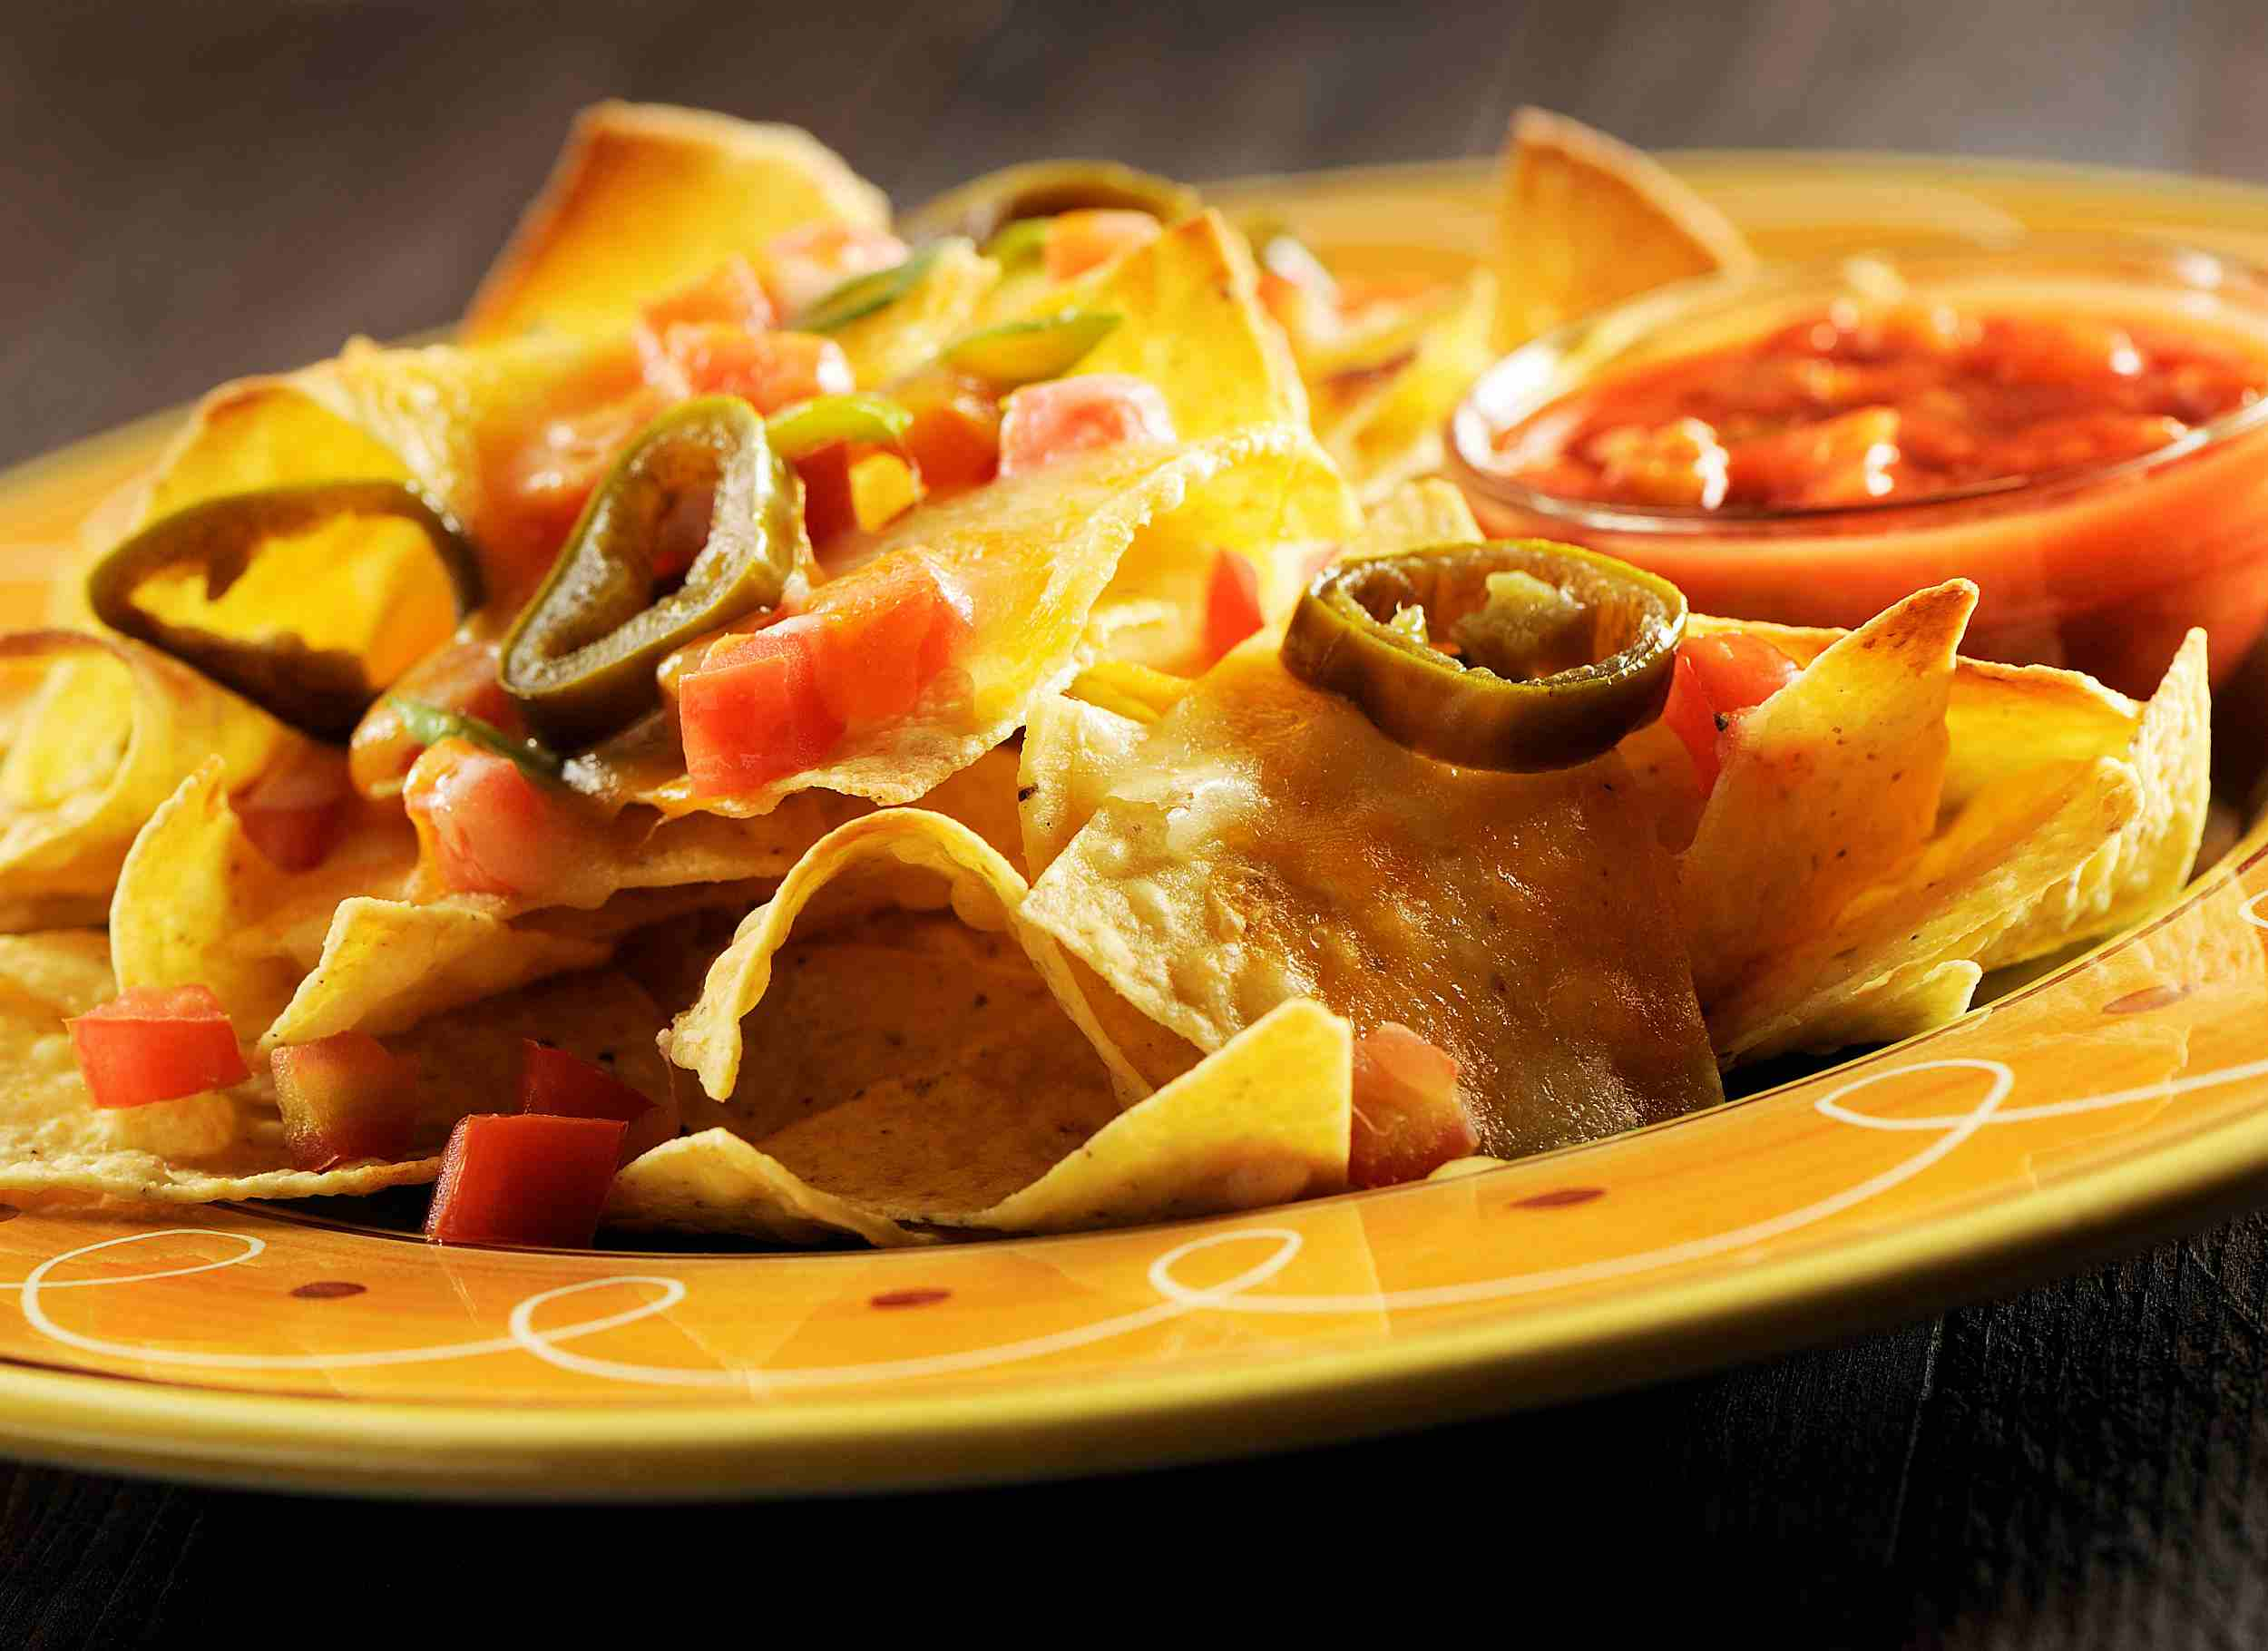 how to make nachos with your favorite toppings